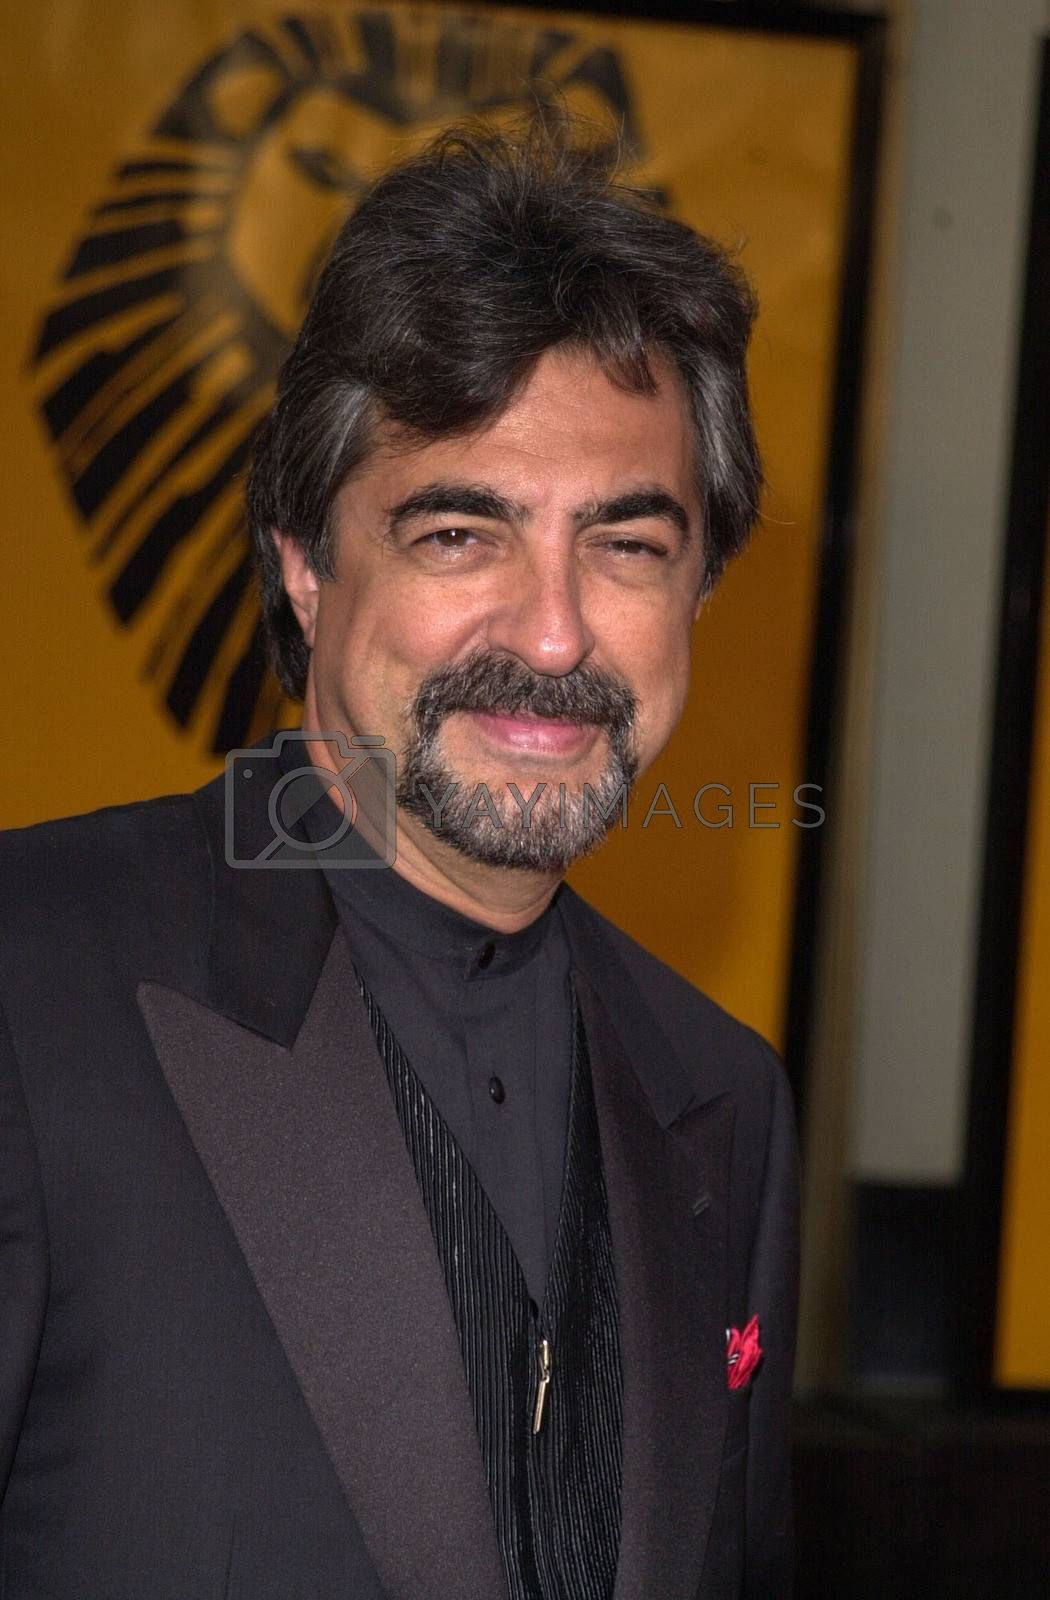 """Joe Mategna at a special presentation of Disney's """"The Lion King"""" benfitting the Karabo Foundation, Pantages Theater, 10-18-00"""